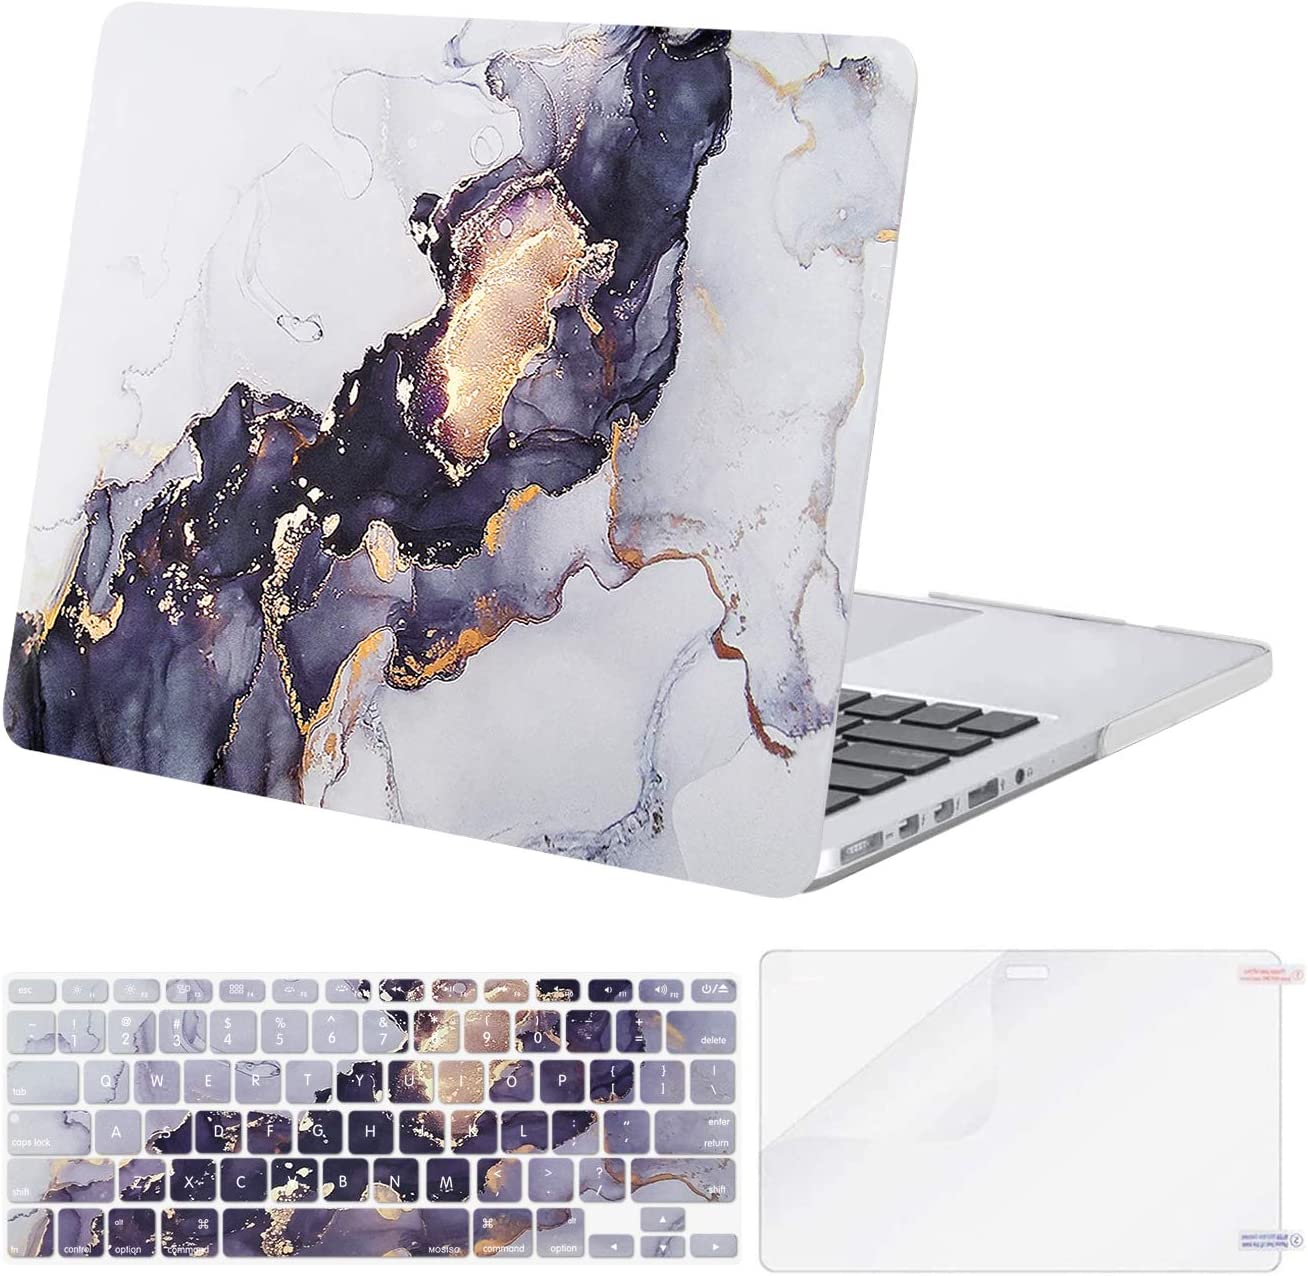 MOSISO Compatible with MacBook Pro 13 inch Case 2015 2014 2013 end 2012 A1502 A1425 with Retina Display, Protective Plastic Pattern Hard Shell Case&Keyboard Cover&Screen Protector, Gray Black Marble